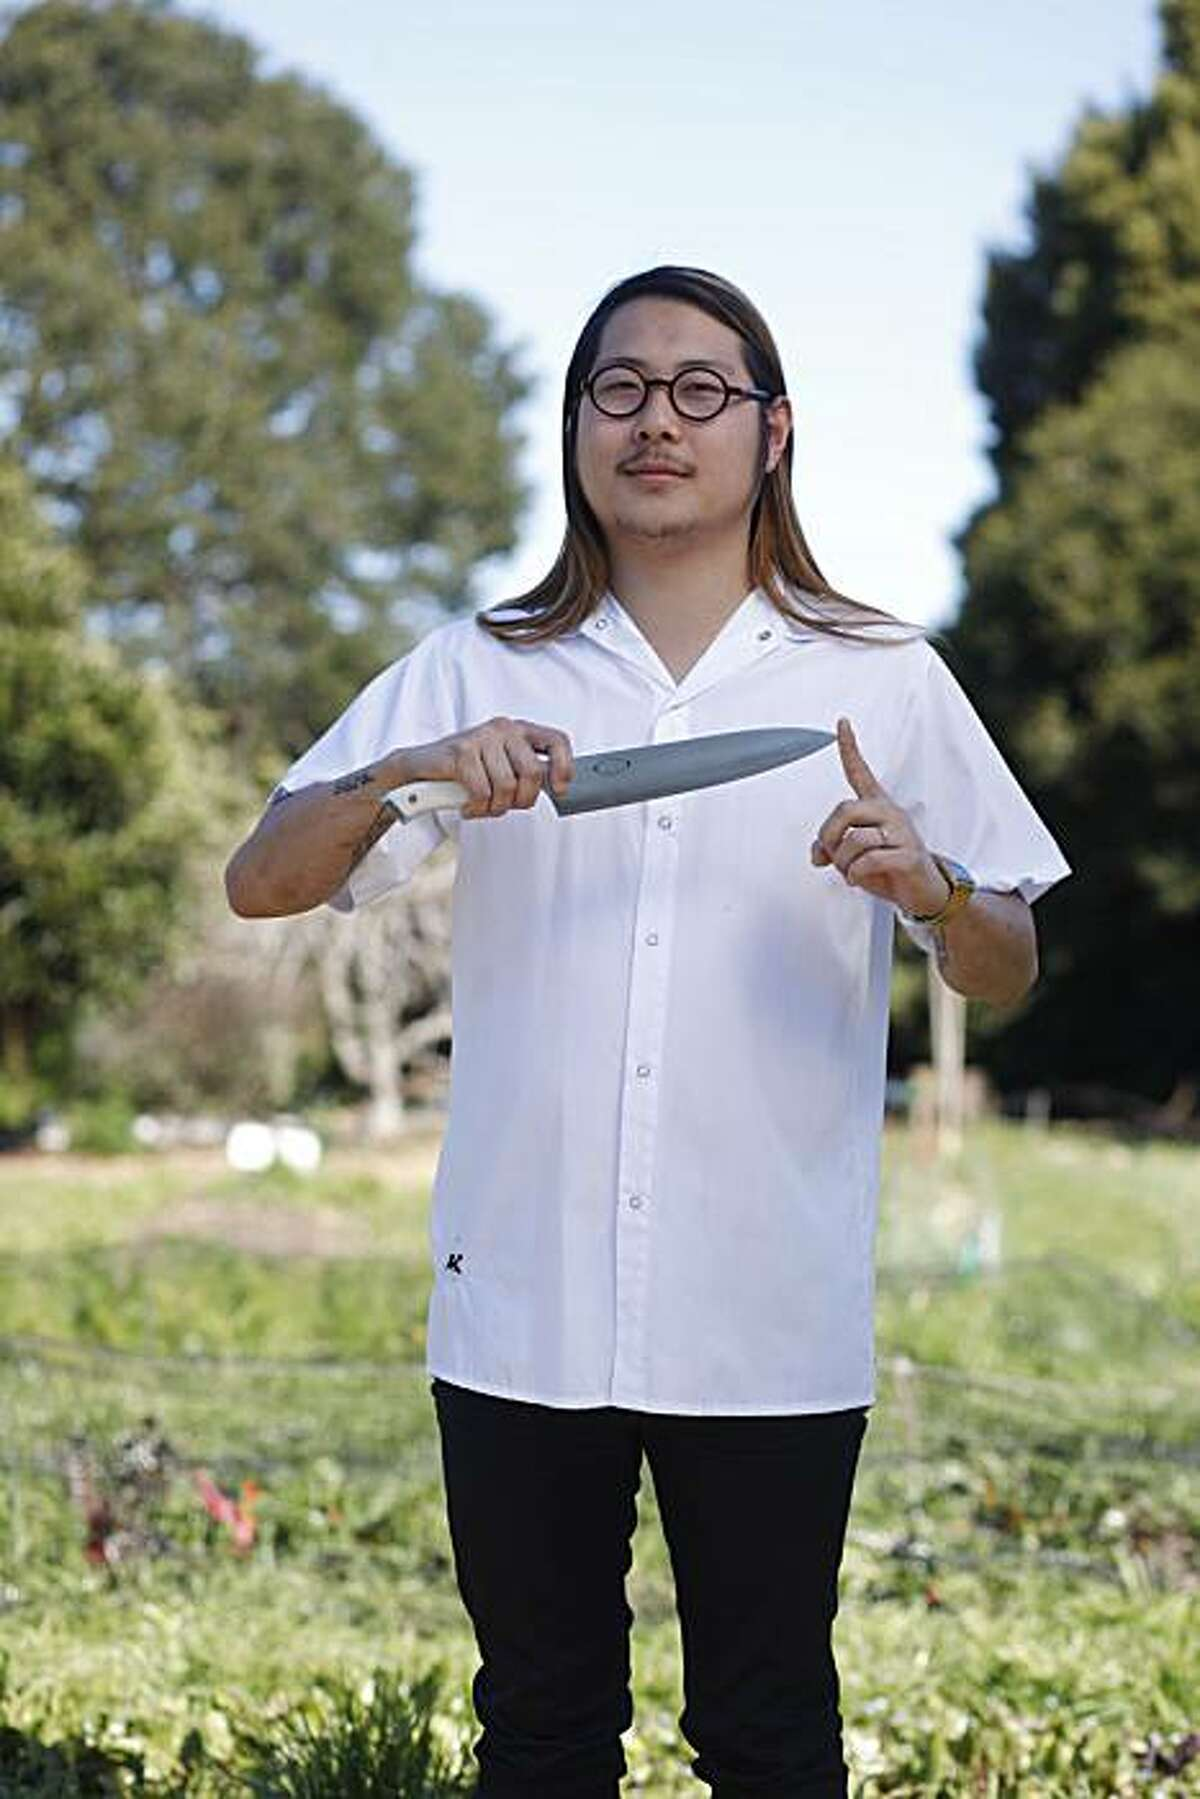 Danny Bowien, chef at Mission Chinese Food, one of six bay area rising star chefs stands for a portrait at the Edible Schoolyard on the Martin Luther King Middle School campus on Tuesday Feb. 22, 2011 in Berkeley, Calif.